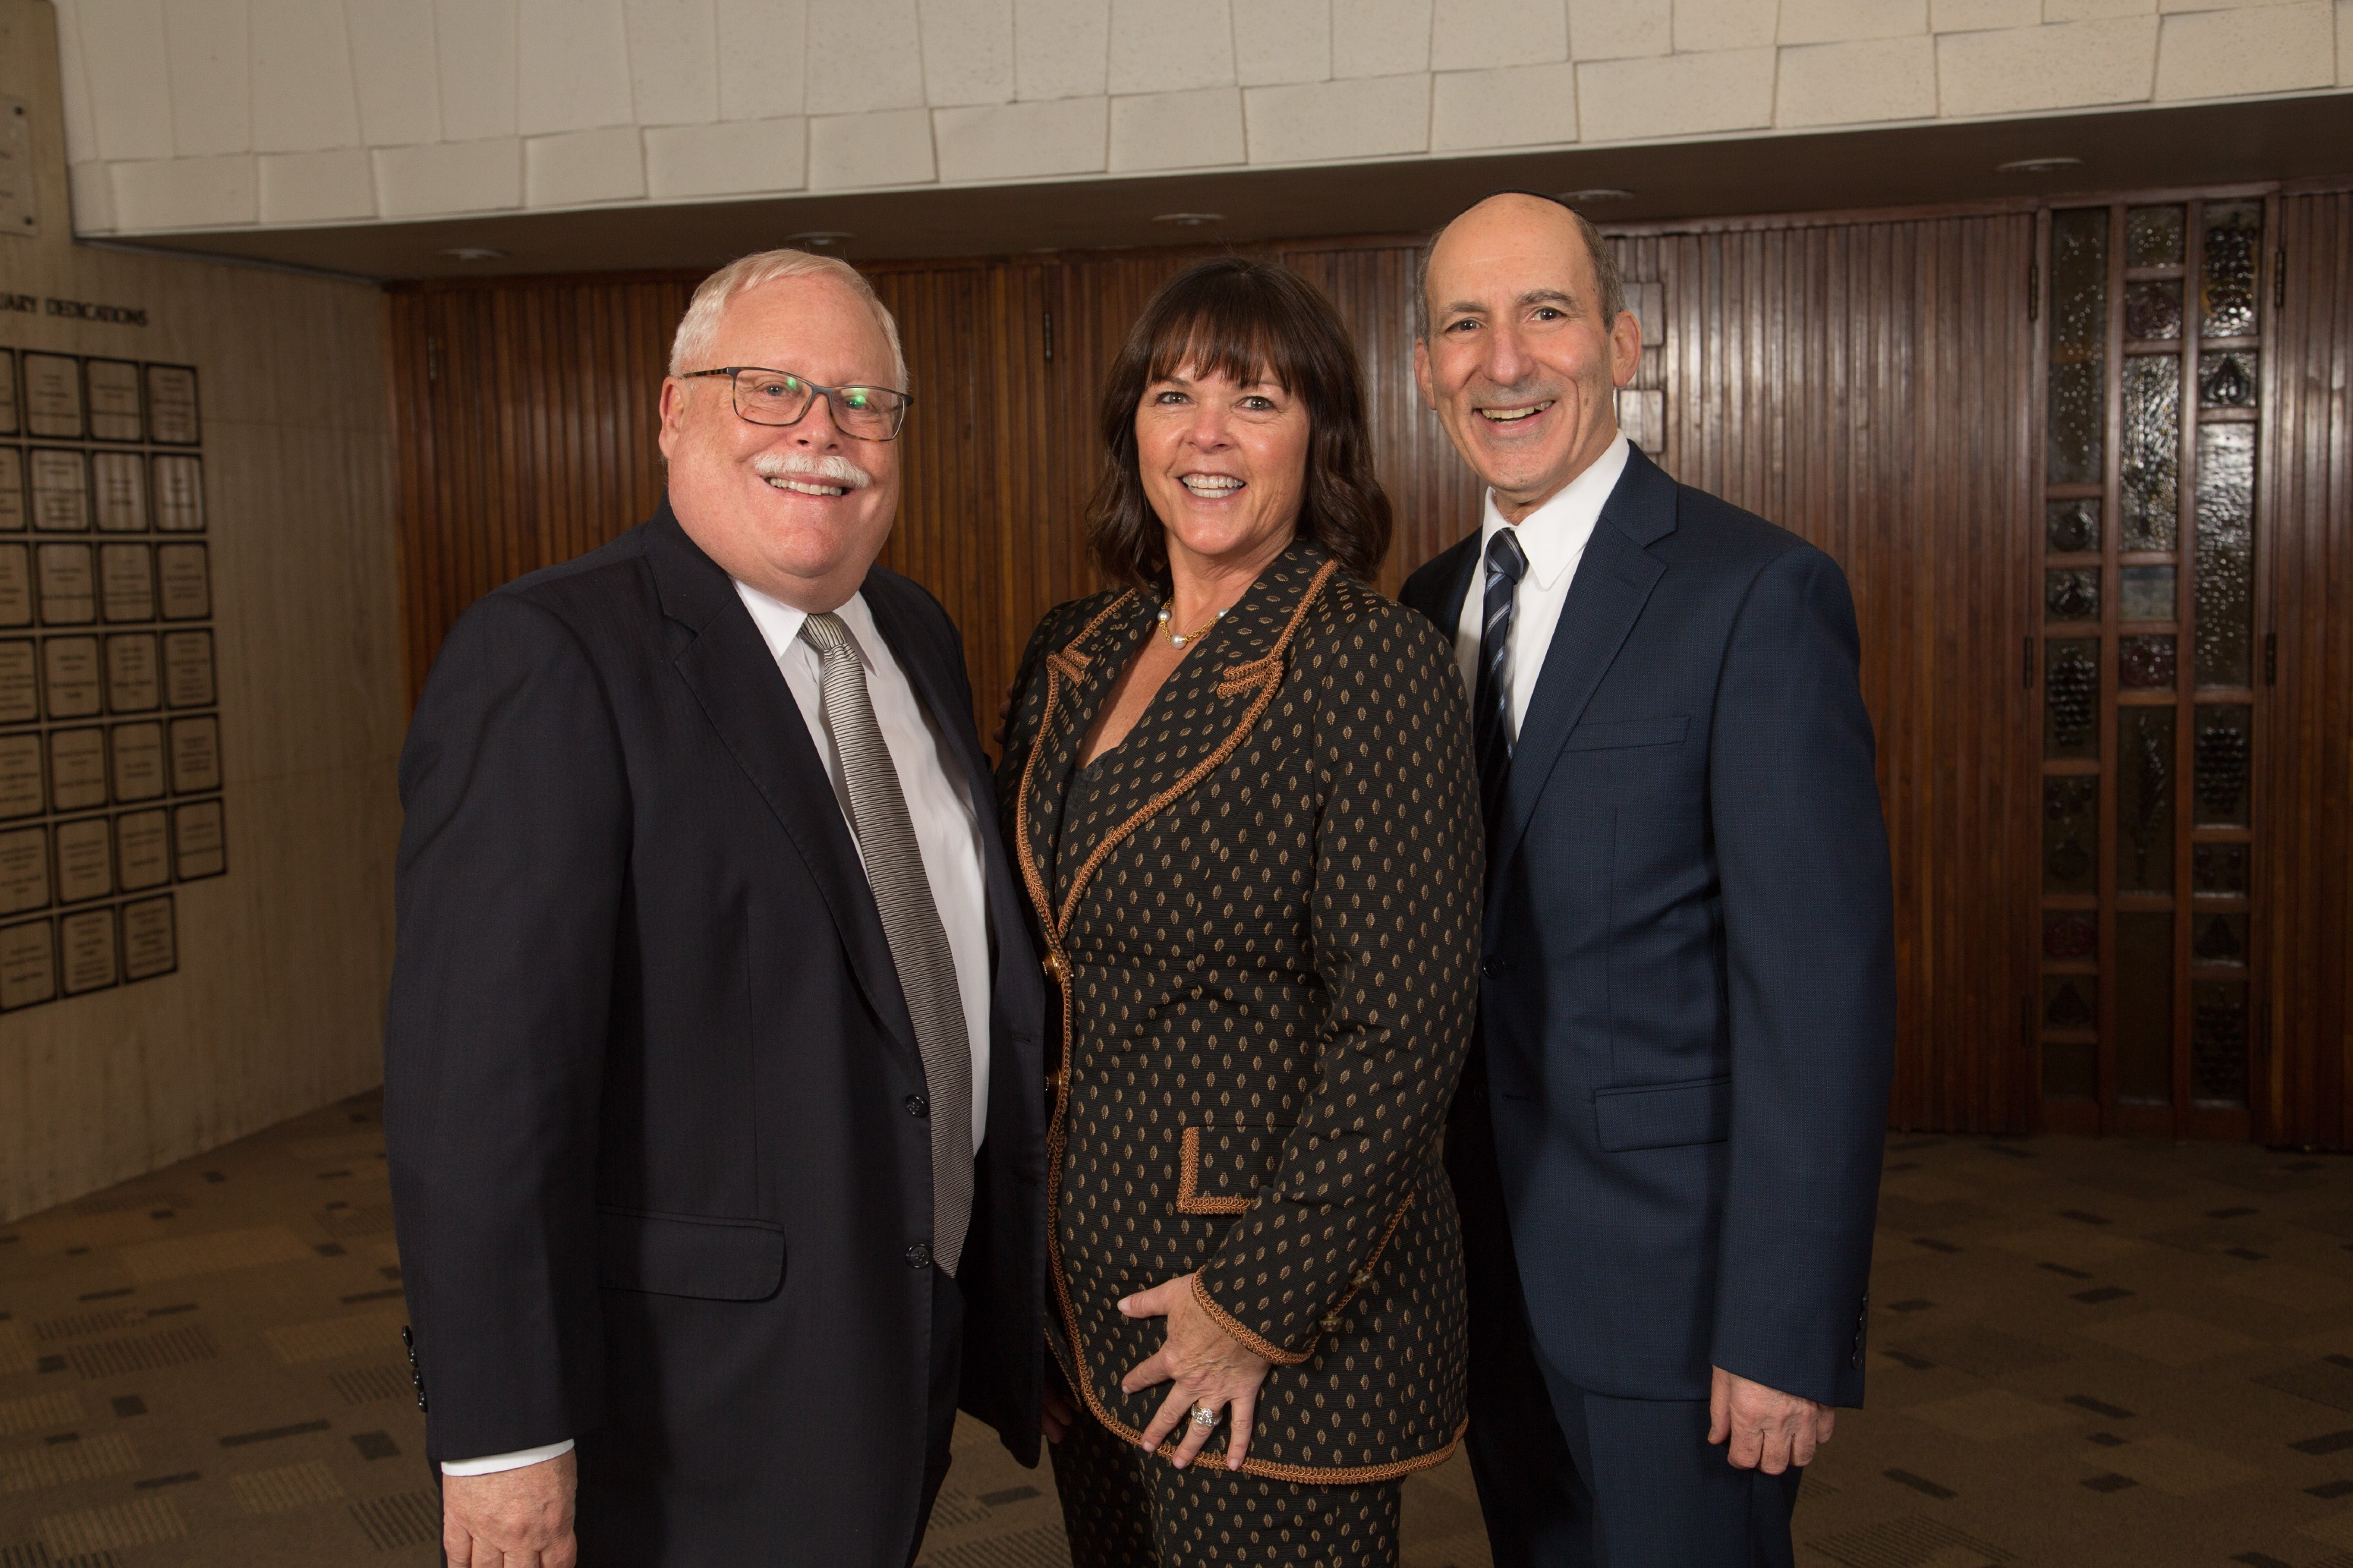 BJE Board President Mark Berns, Honoree Cheryl Davidson and BJE Executive Director Dr. Gil Graff